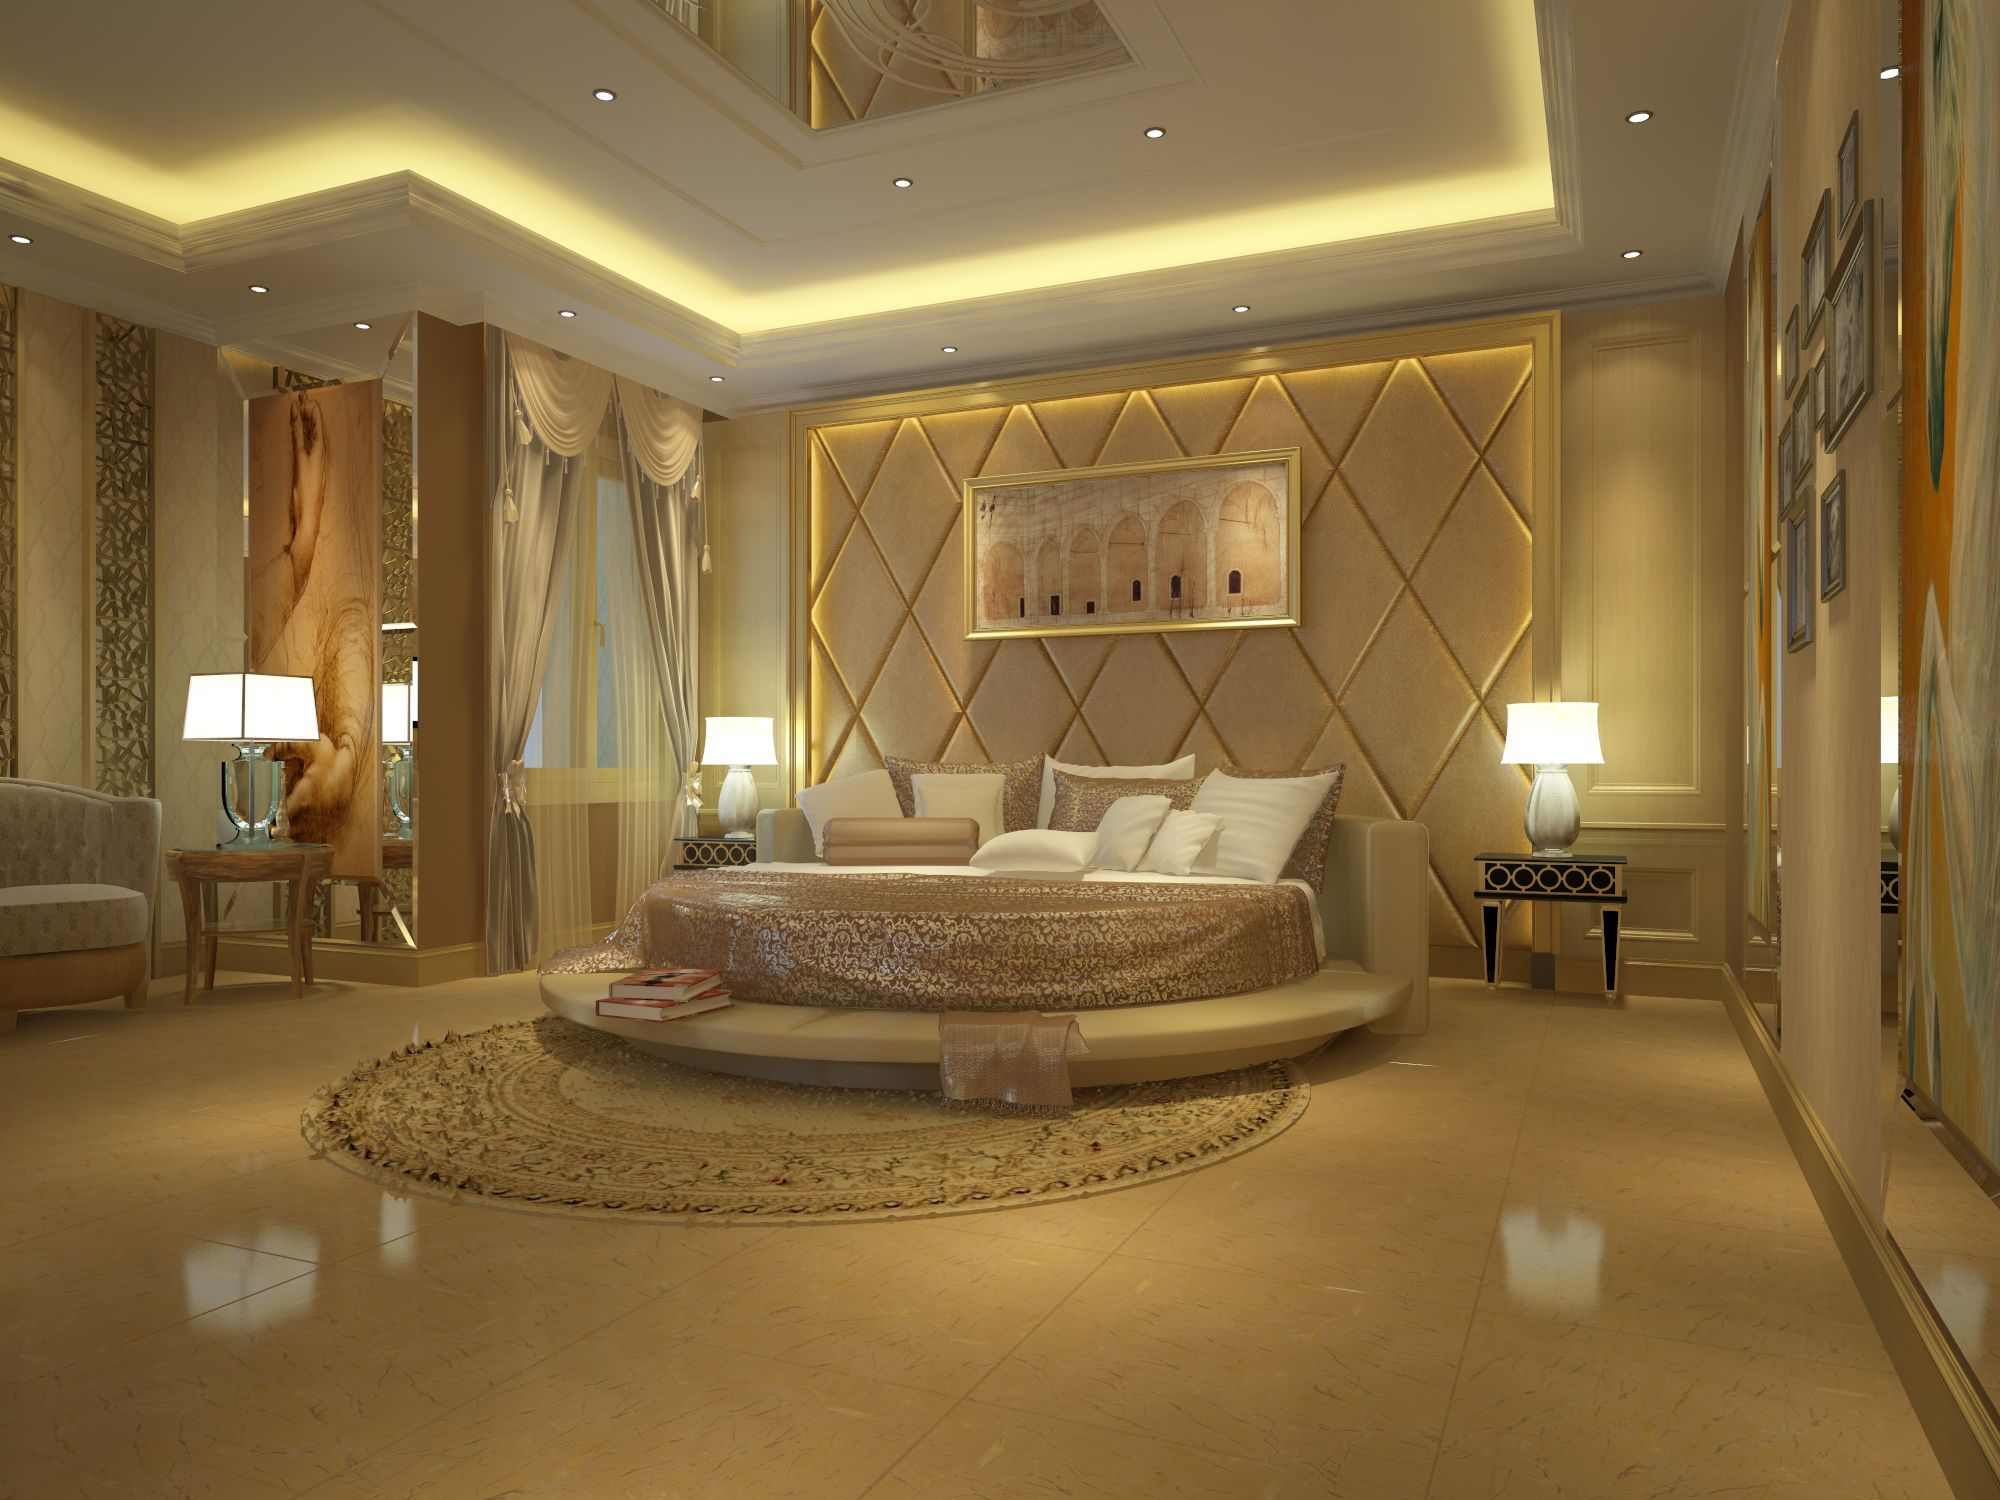 Luxurious Bedroom Design Beauteous 30 Romantic Master Bedroom Designs  Luxury Master Bedroom Master Inspiration